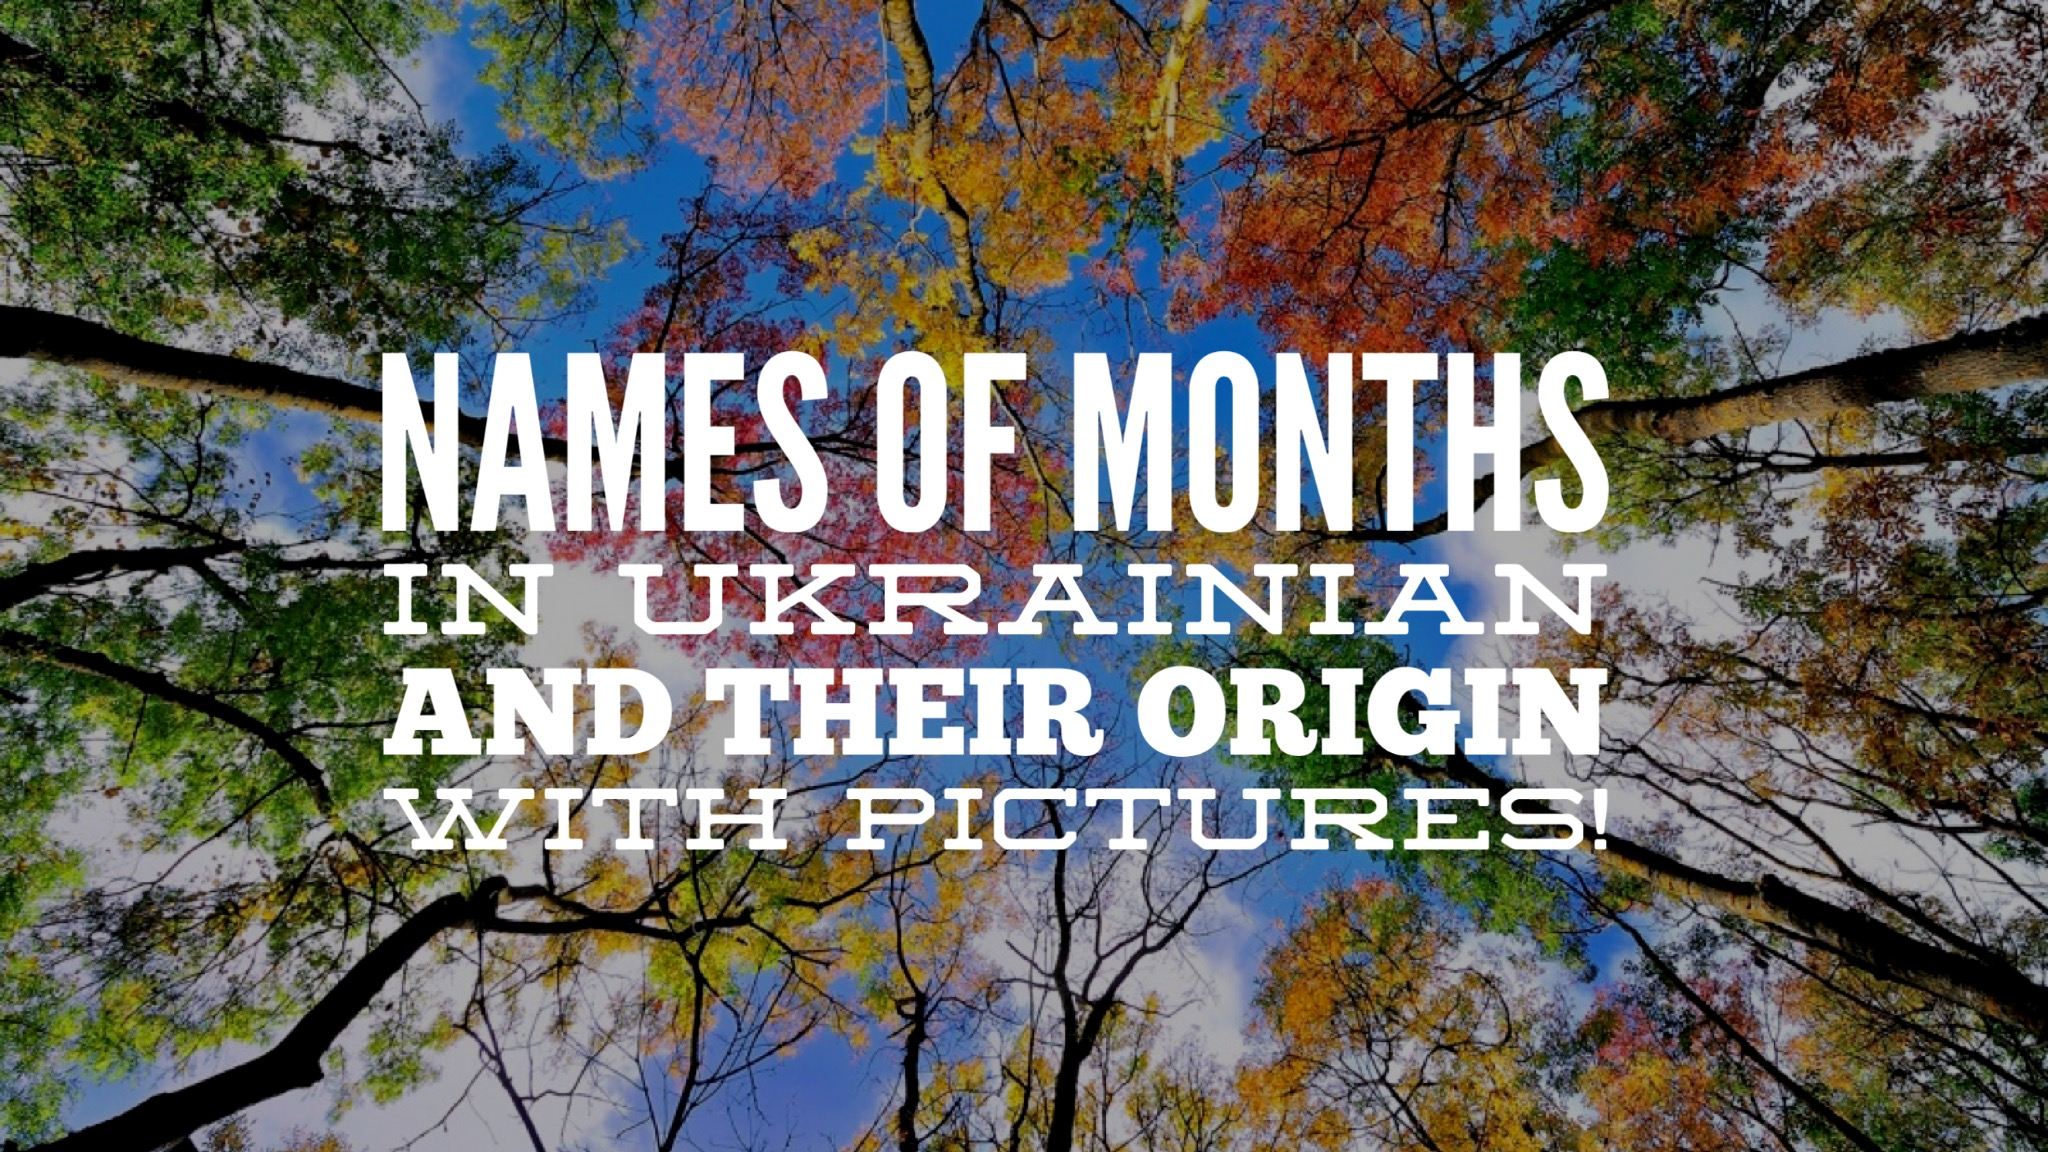 The name of months in the Ukrainian language from January to December 94